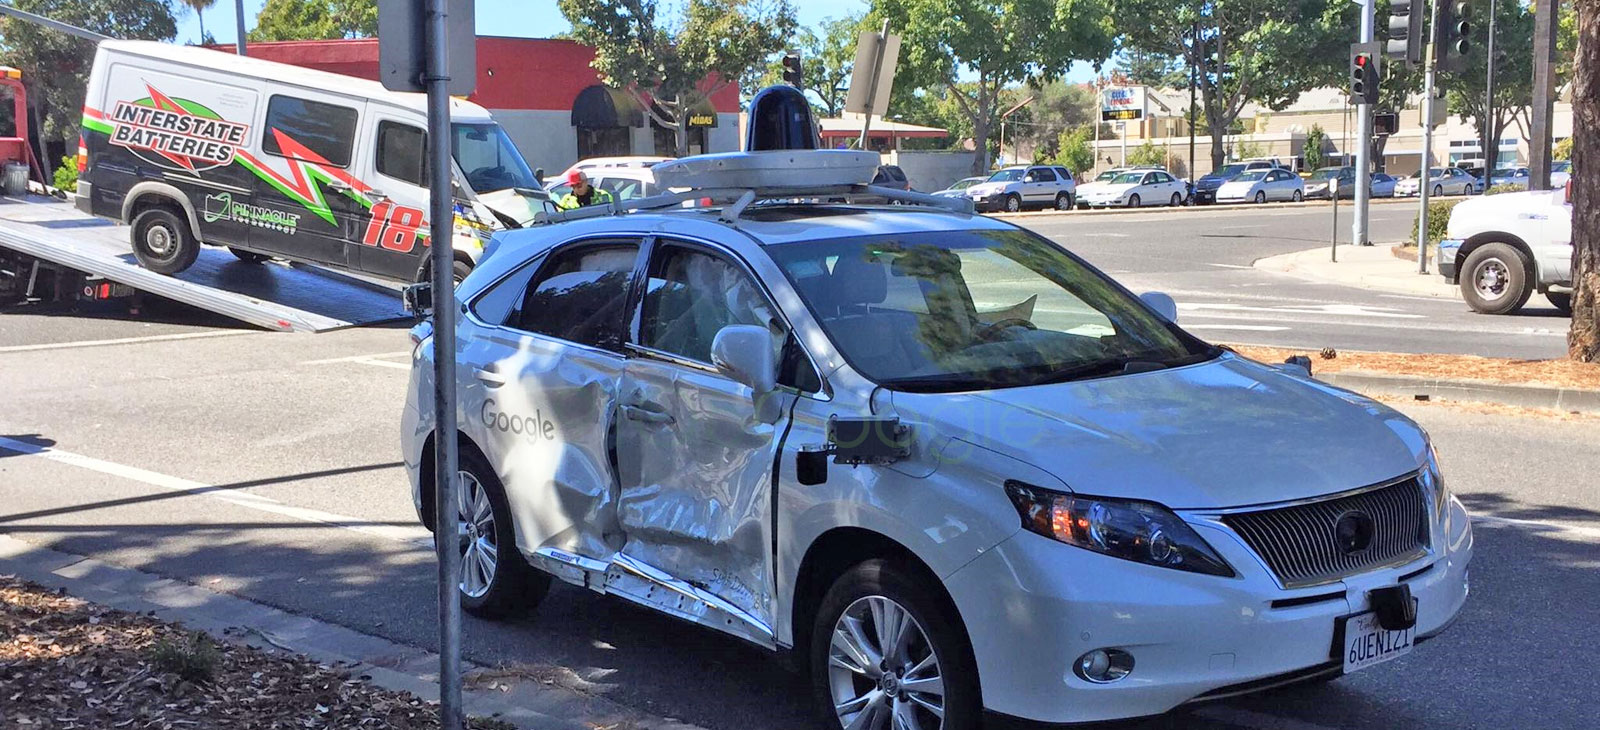 Google S Self Driving Car Is The Victim In A Serious Crash